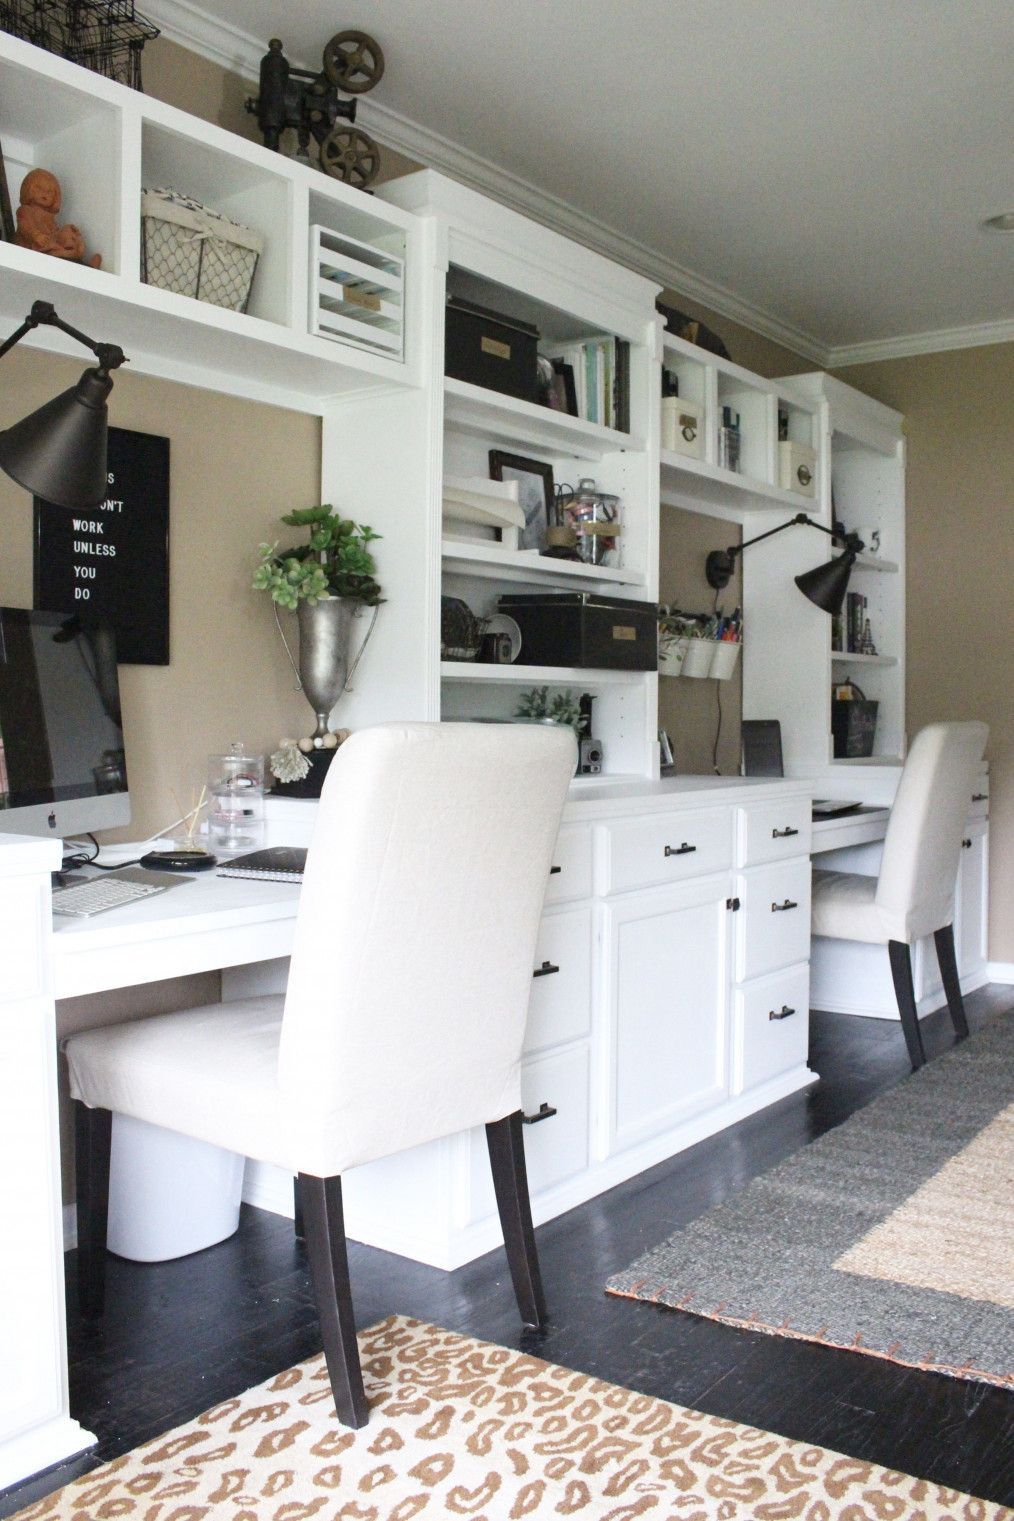 Home office ideas make the most of your extra space whether you work from home have a hobby or need an area for life admin homeofficeideas home